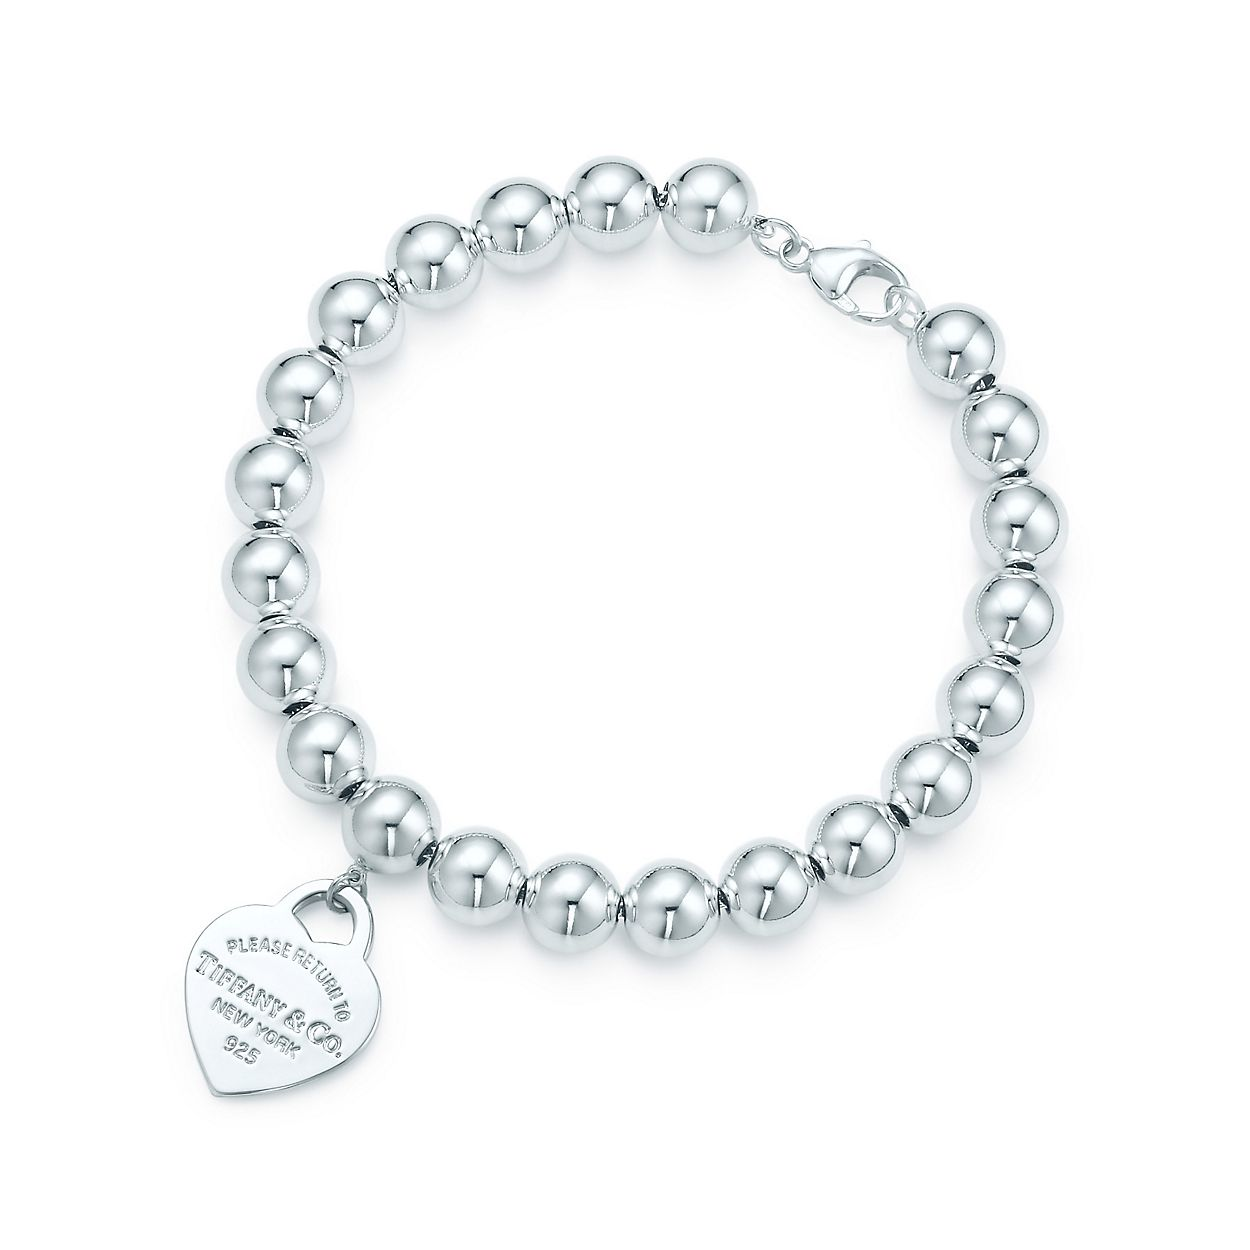 Return to Tiffany small heart tag in silver on a freshwater pearl bracelet Tiffany & Co. fXfi8